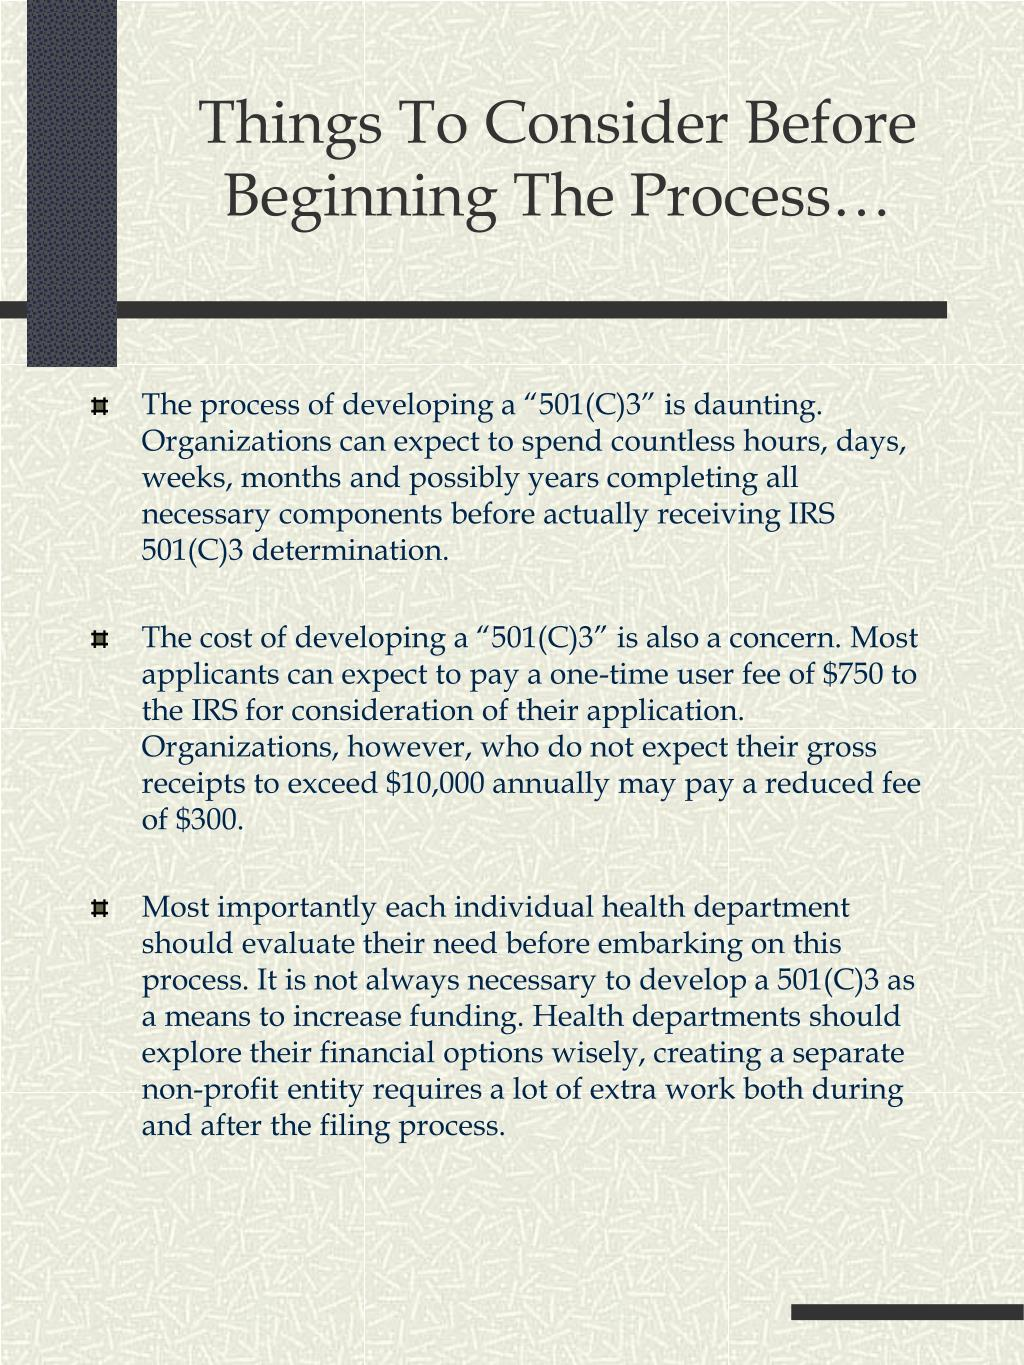 Things To Consider Before Beginning The Process…